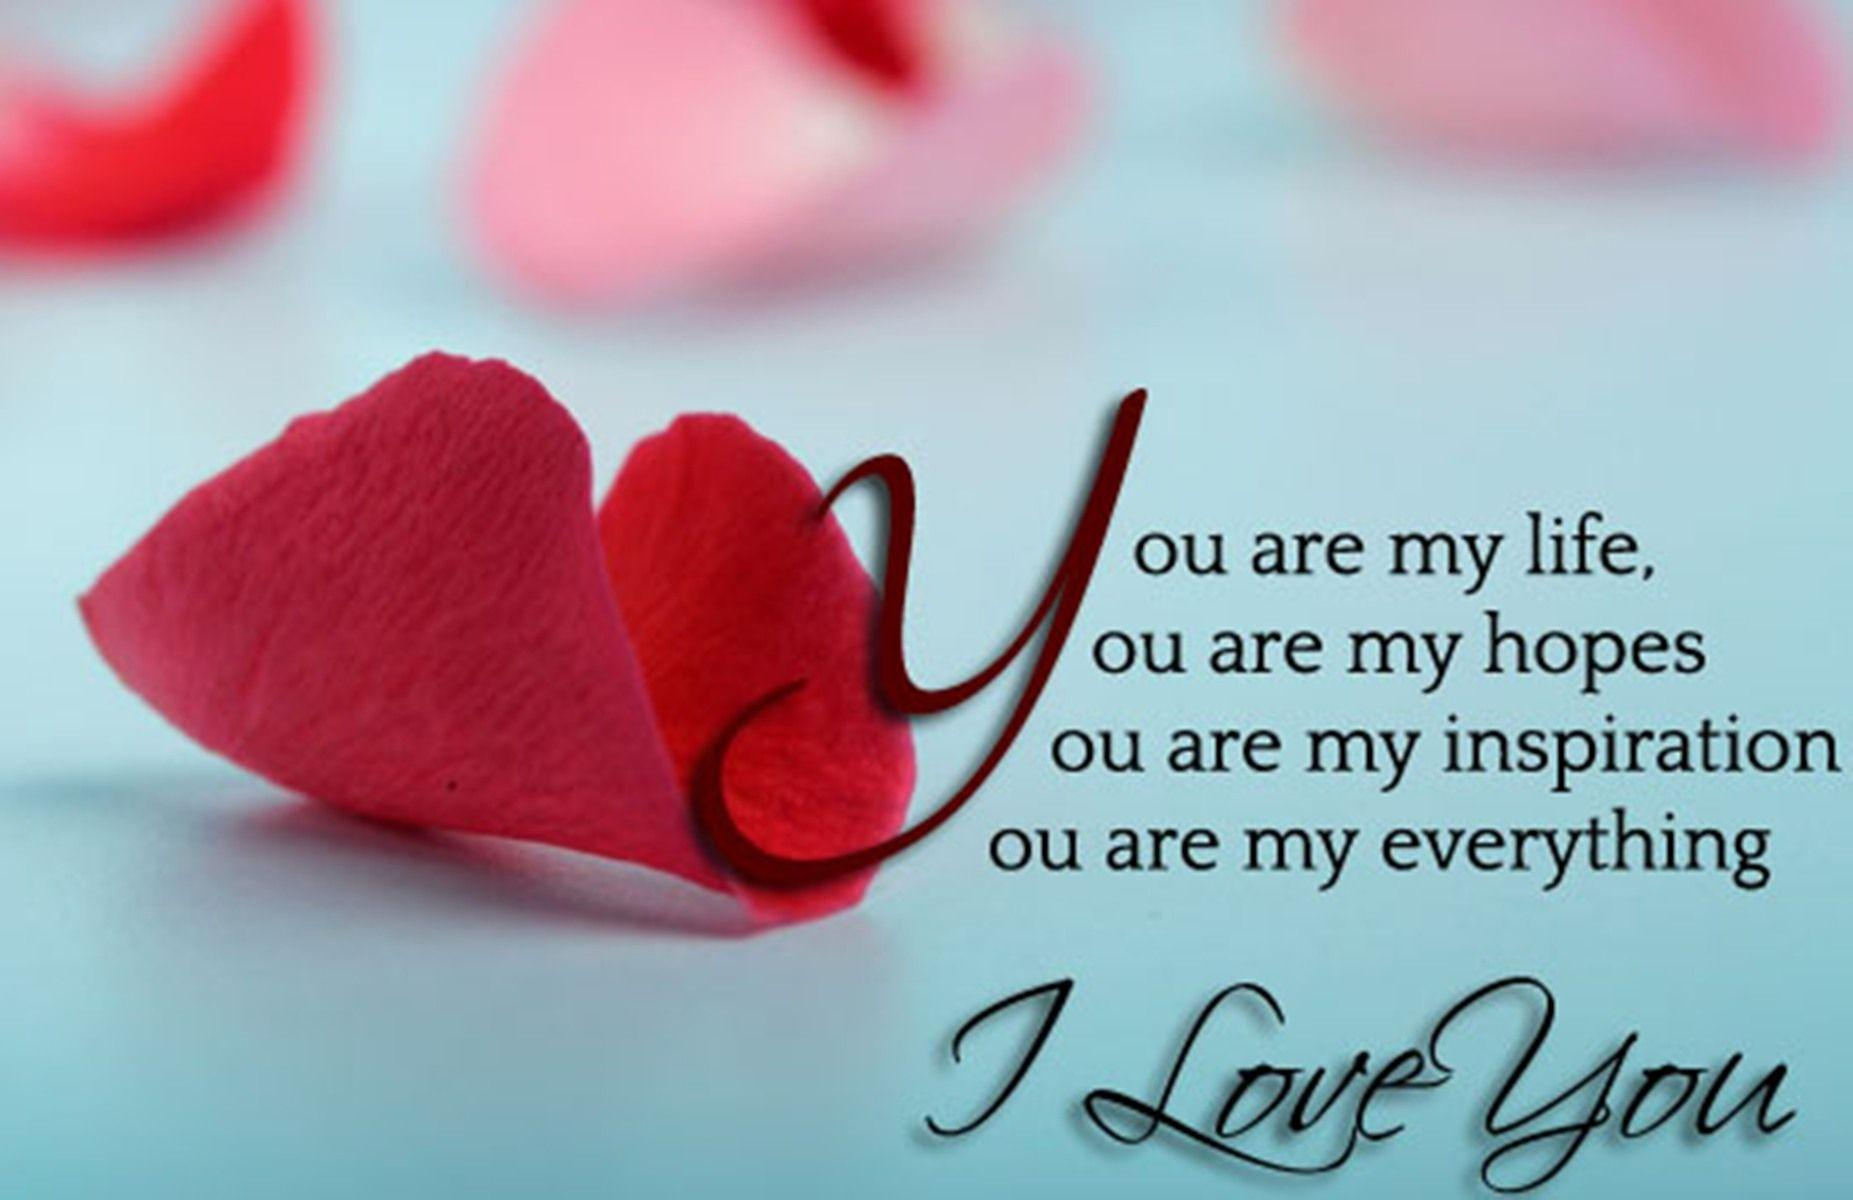 Love Messages Wallpapers For Mobile Phones : Love Message Wallpapers - Wallpaper cave